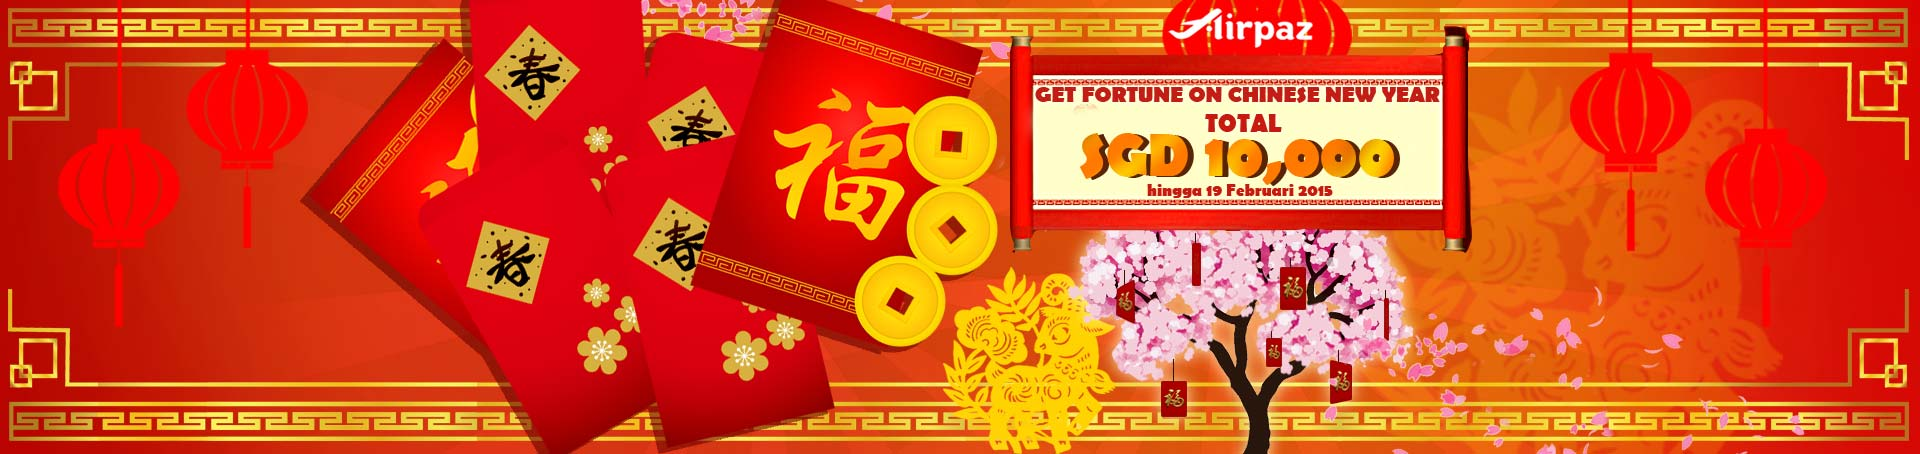 Chinese New Year Total SGD 10.000